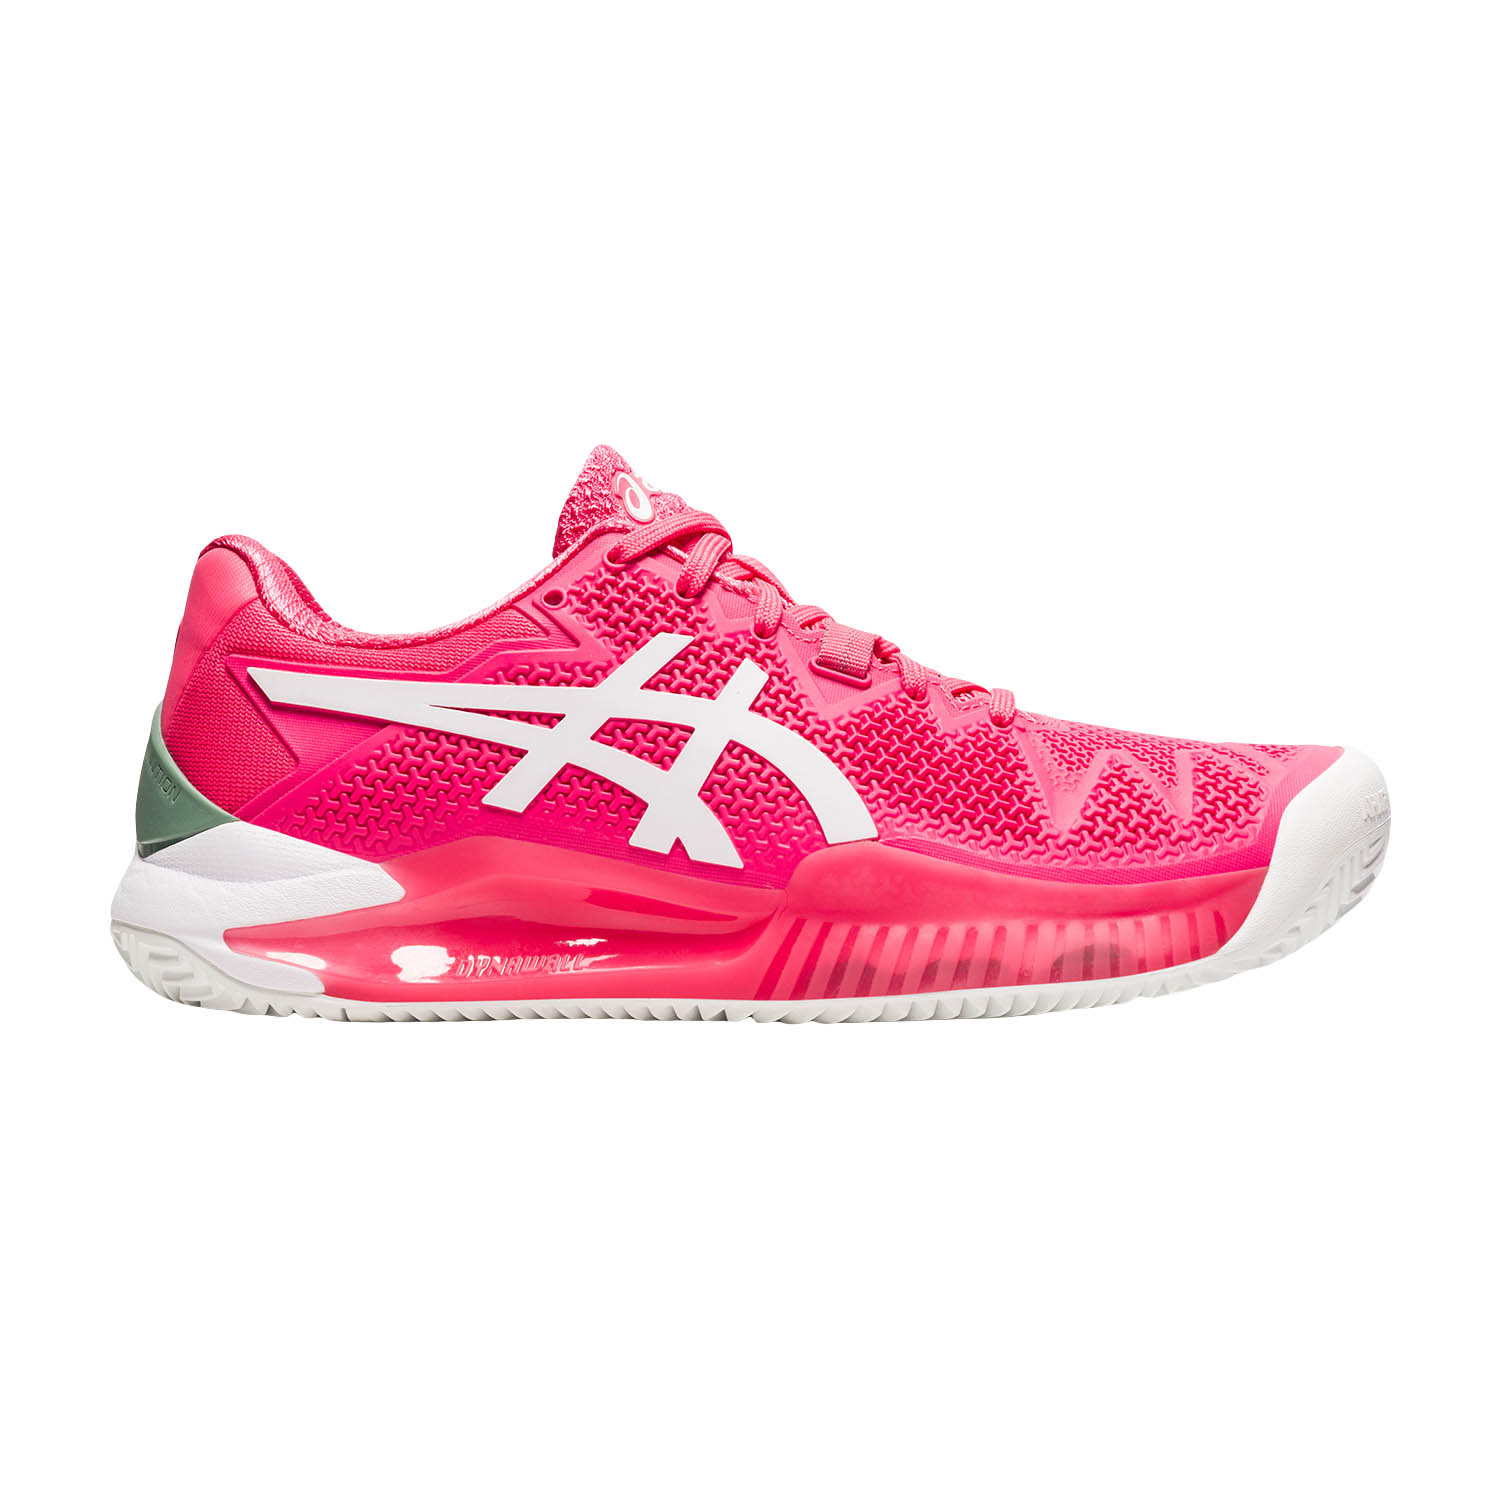 Asics Gel Resolution 8 Clay - Pink Cameo/White